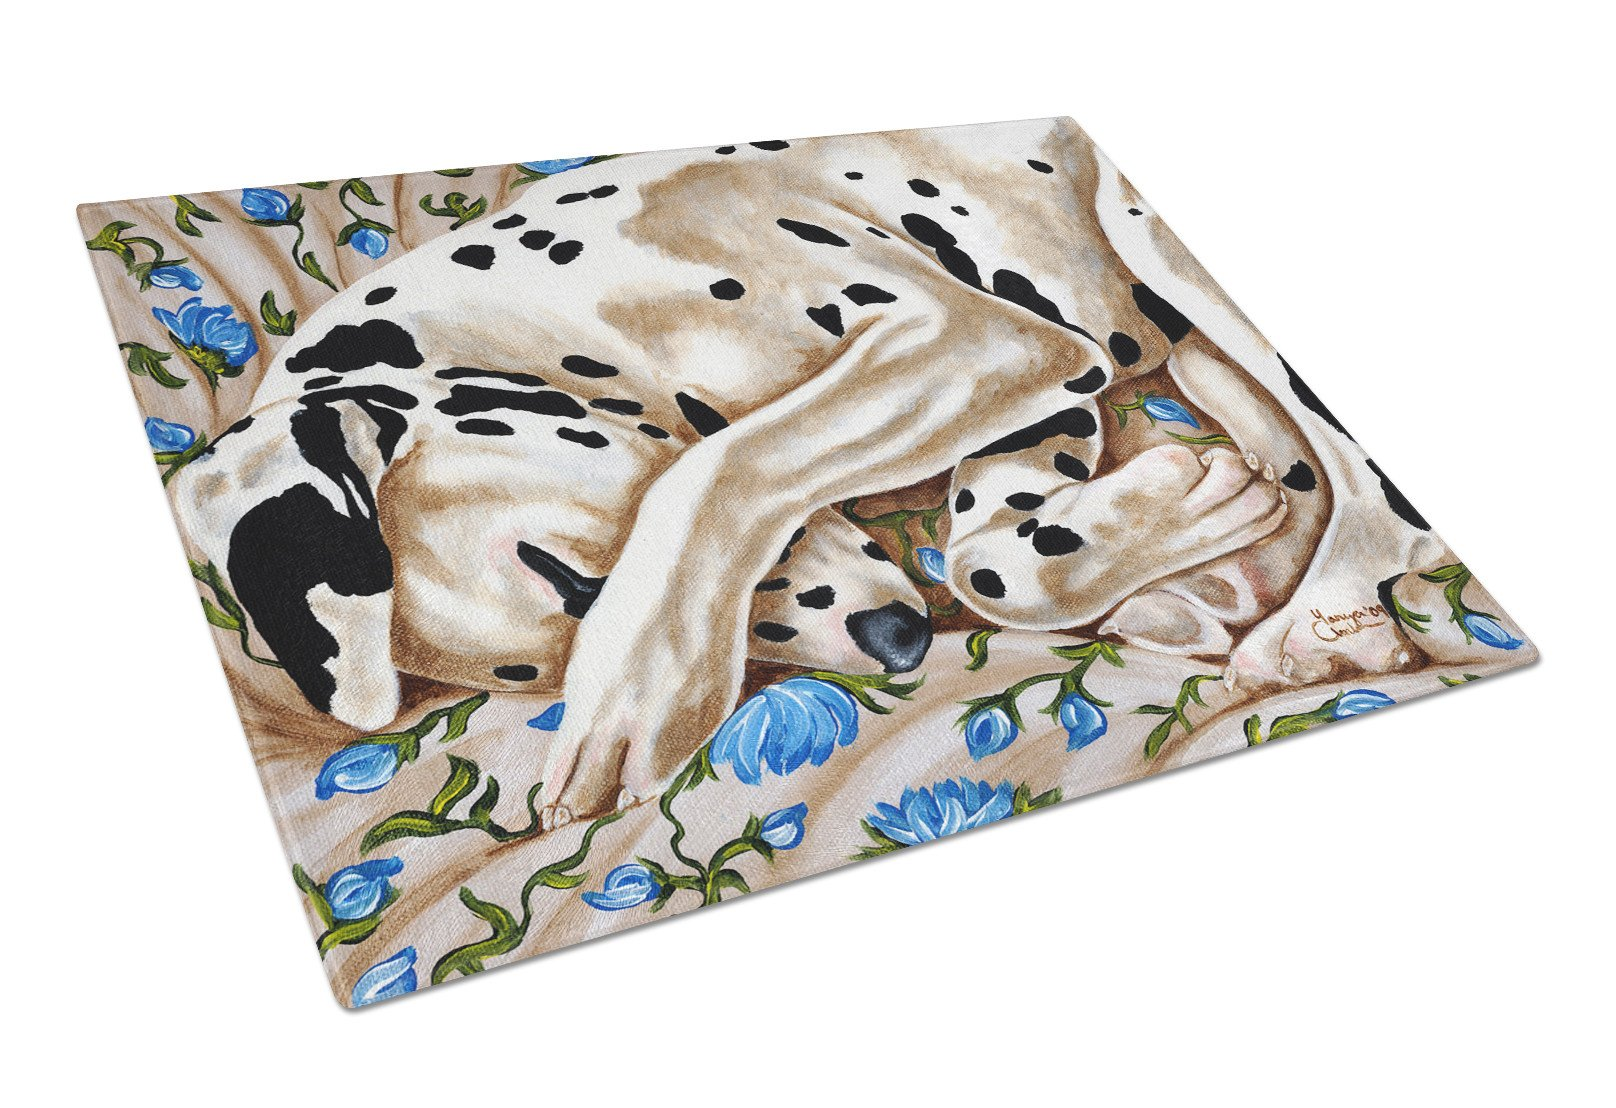 Bed of Roses Dalmatian Glass Cutting Board Large AMB1407LCB by Caroline's Treasures